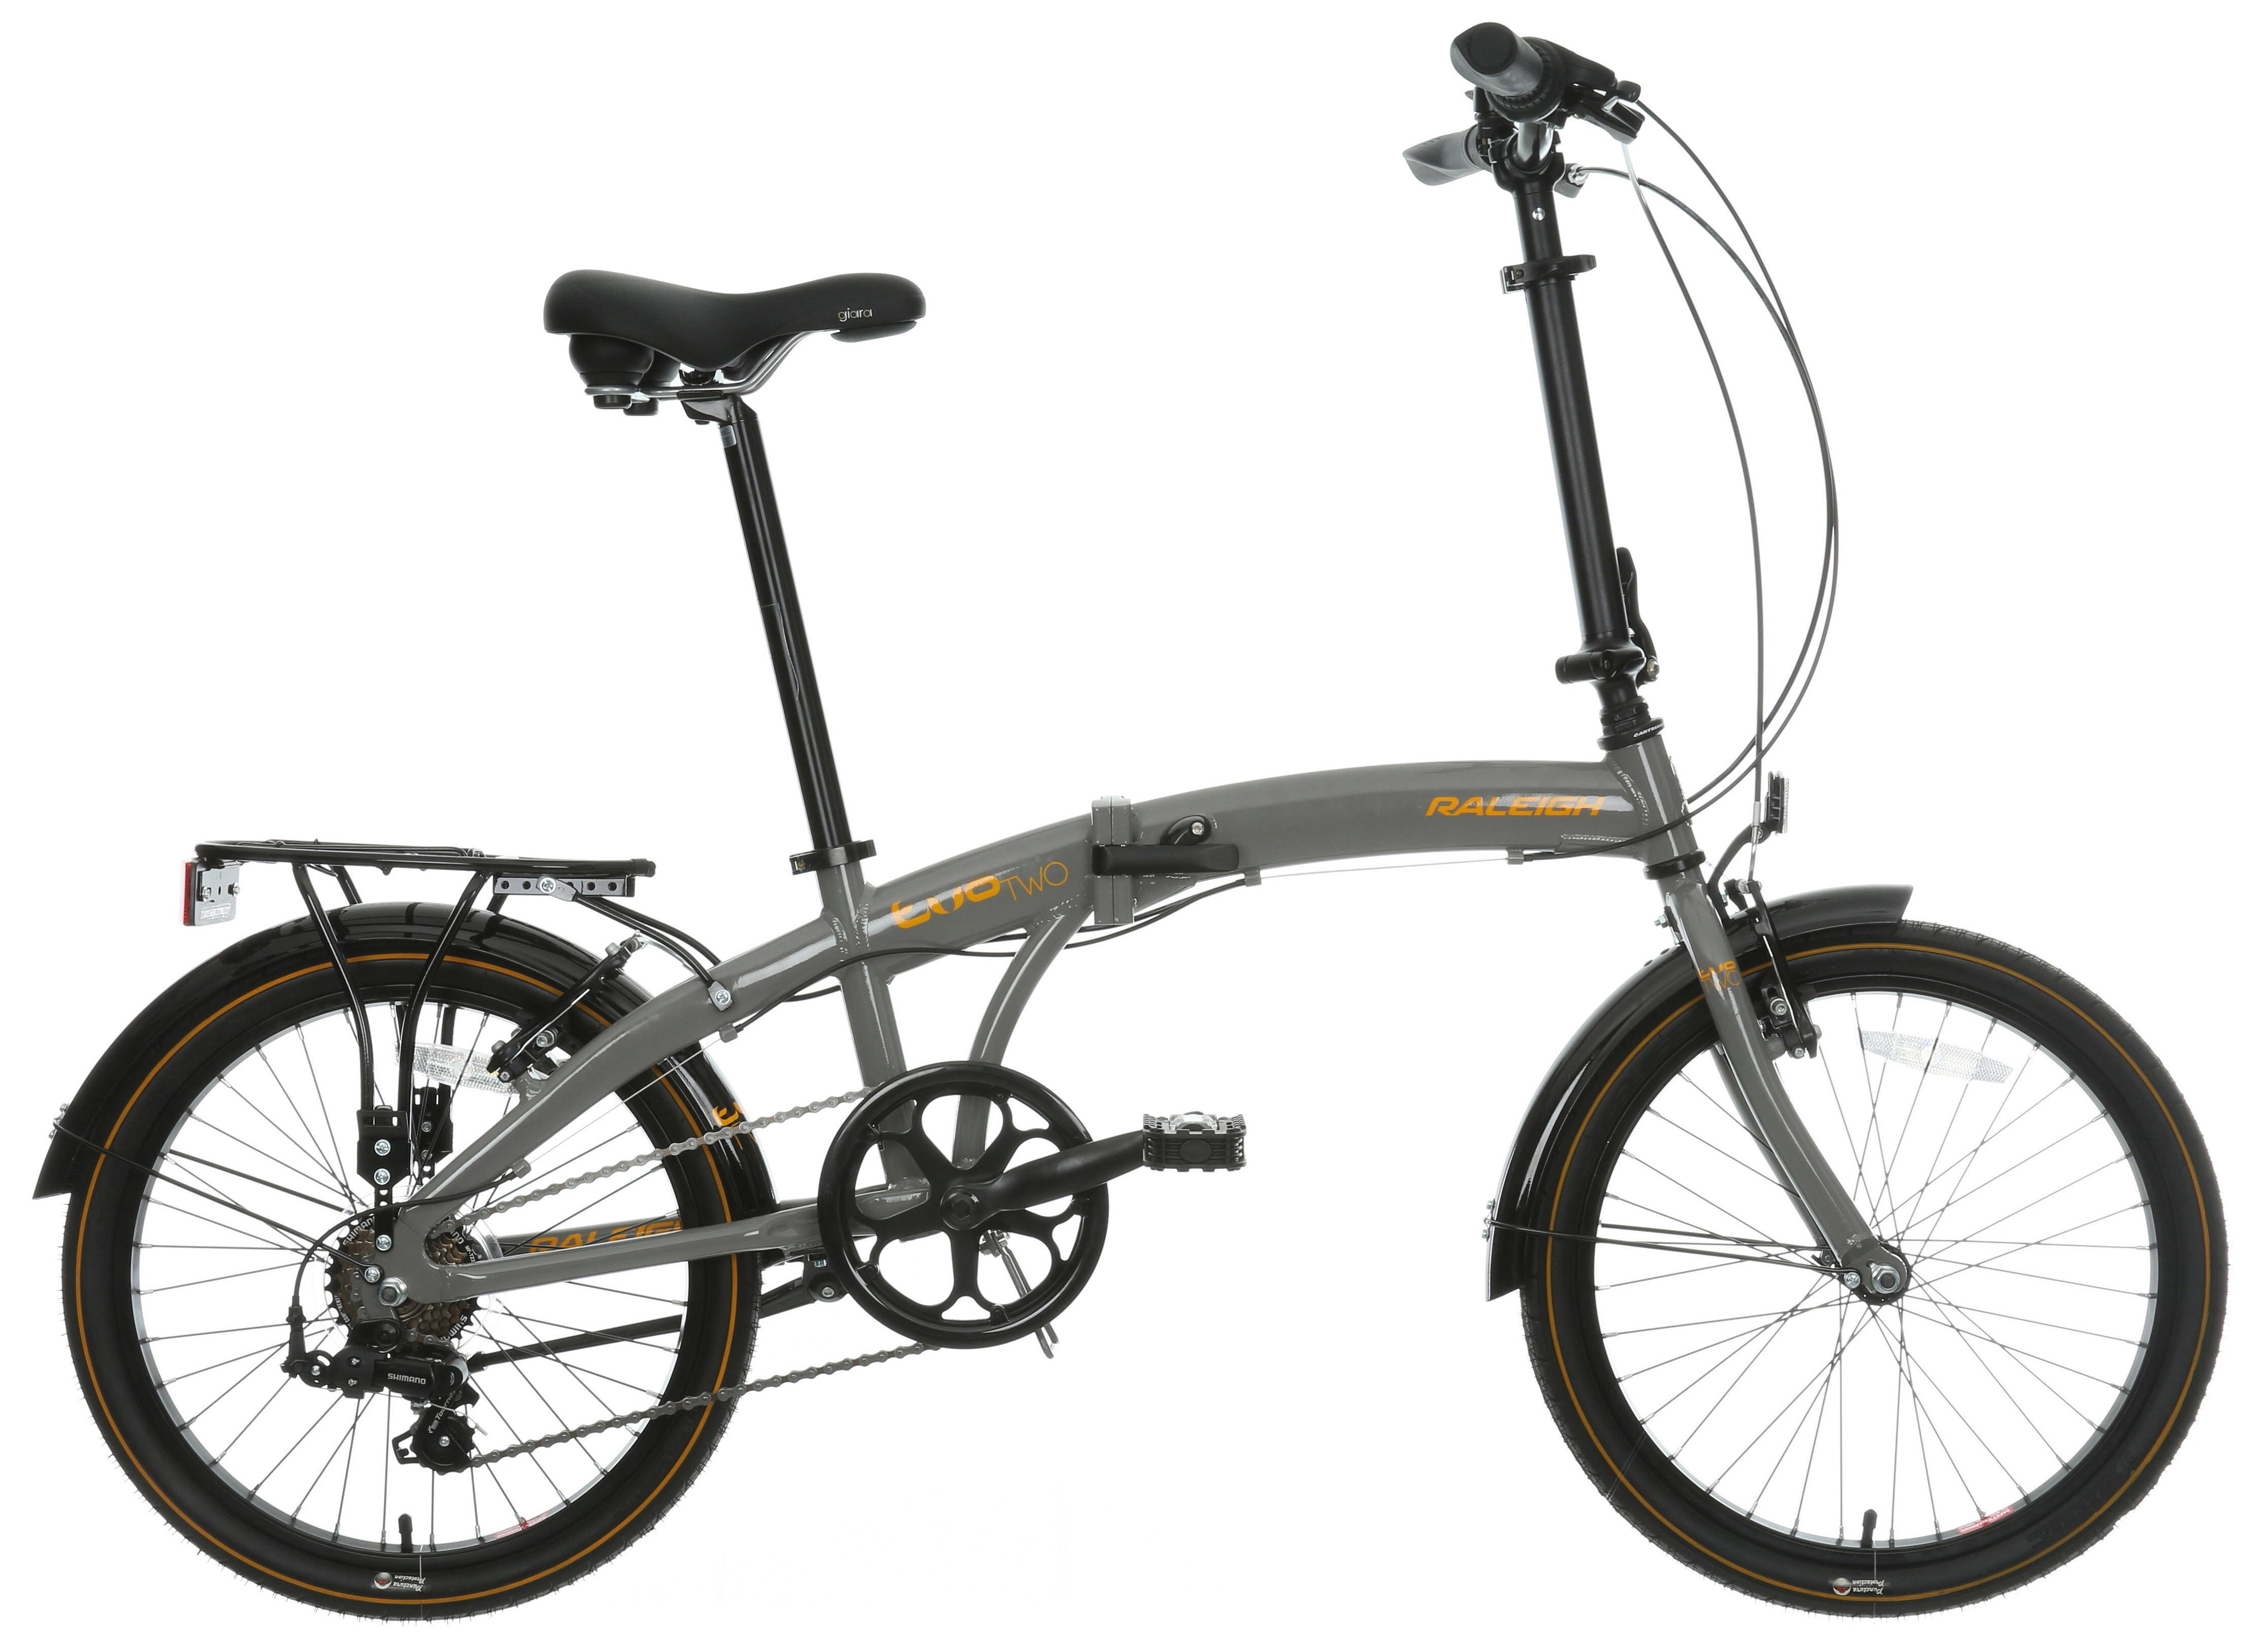 bikes mens and womens bikes built for free in store Impala SS image of raleigh evo 2 folding bike